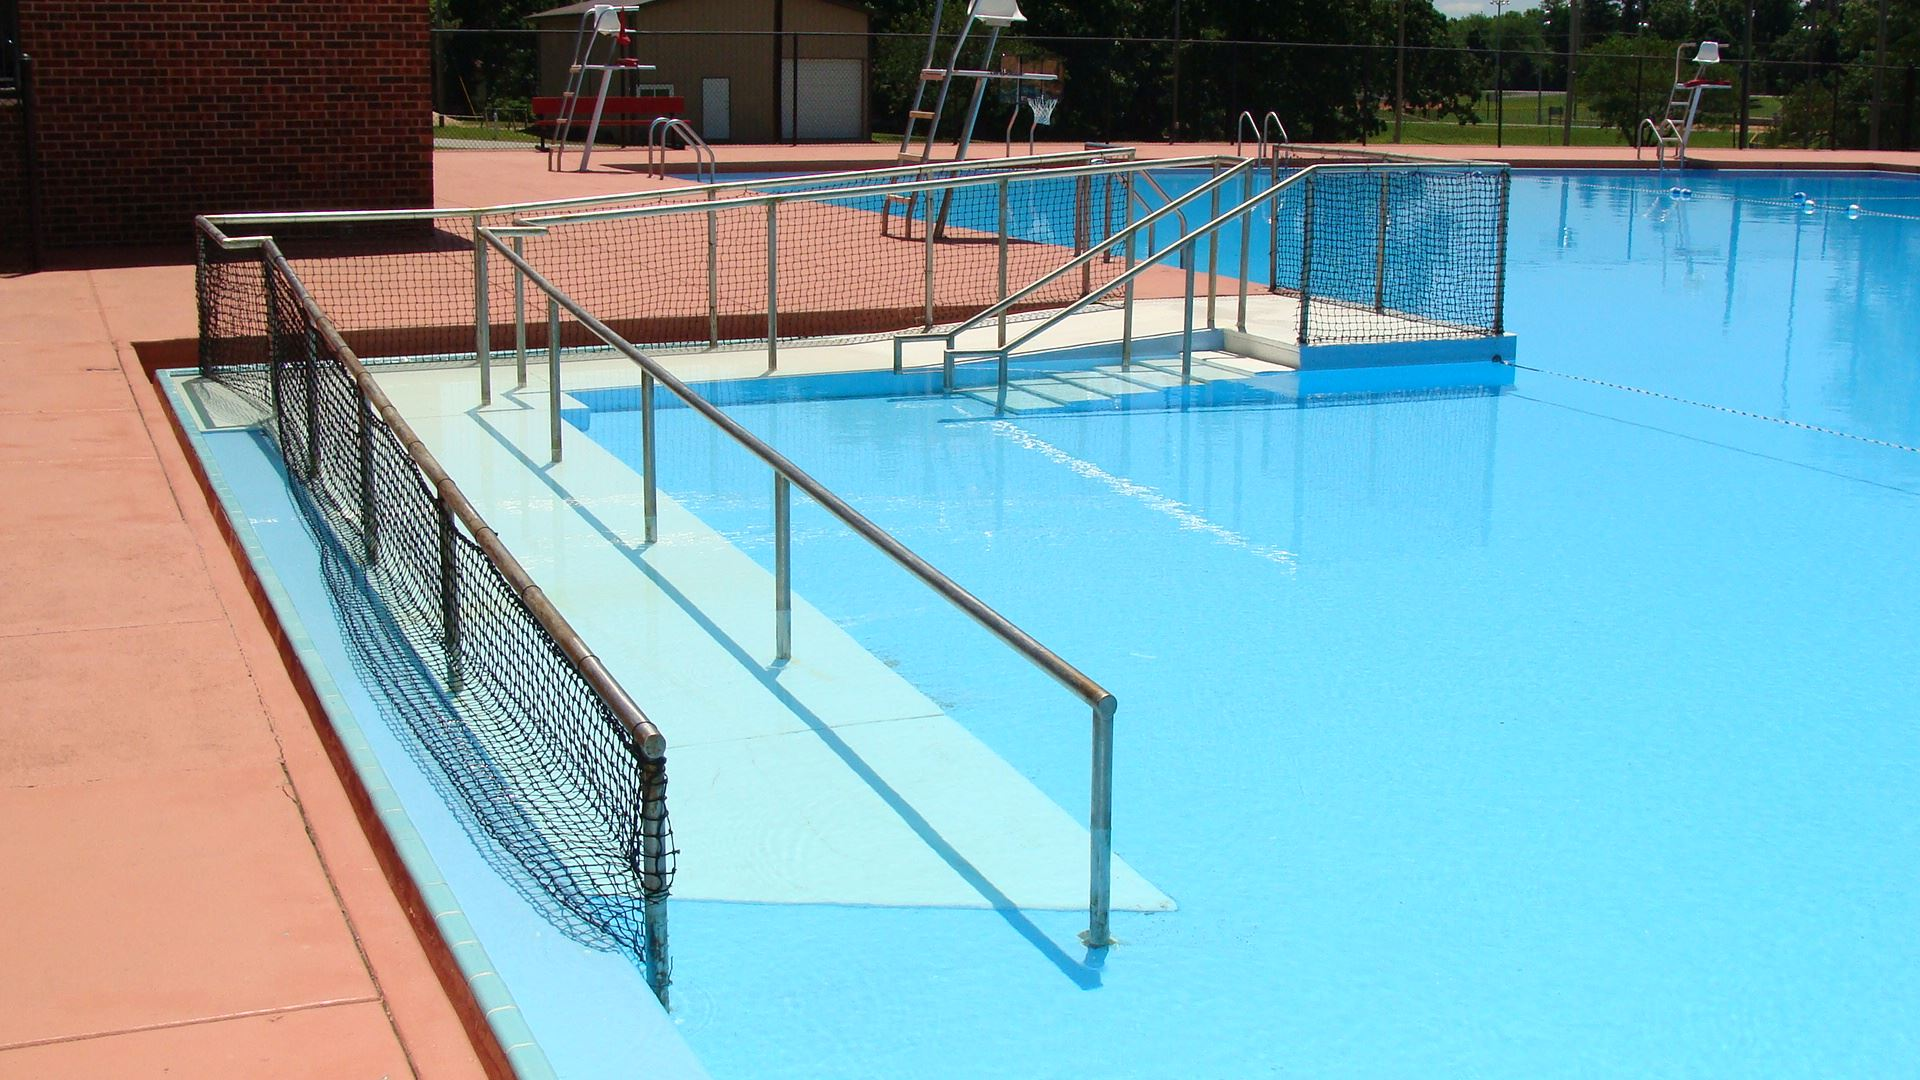 Pool with wheelchair ramp accessibility